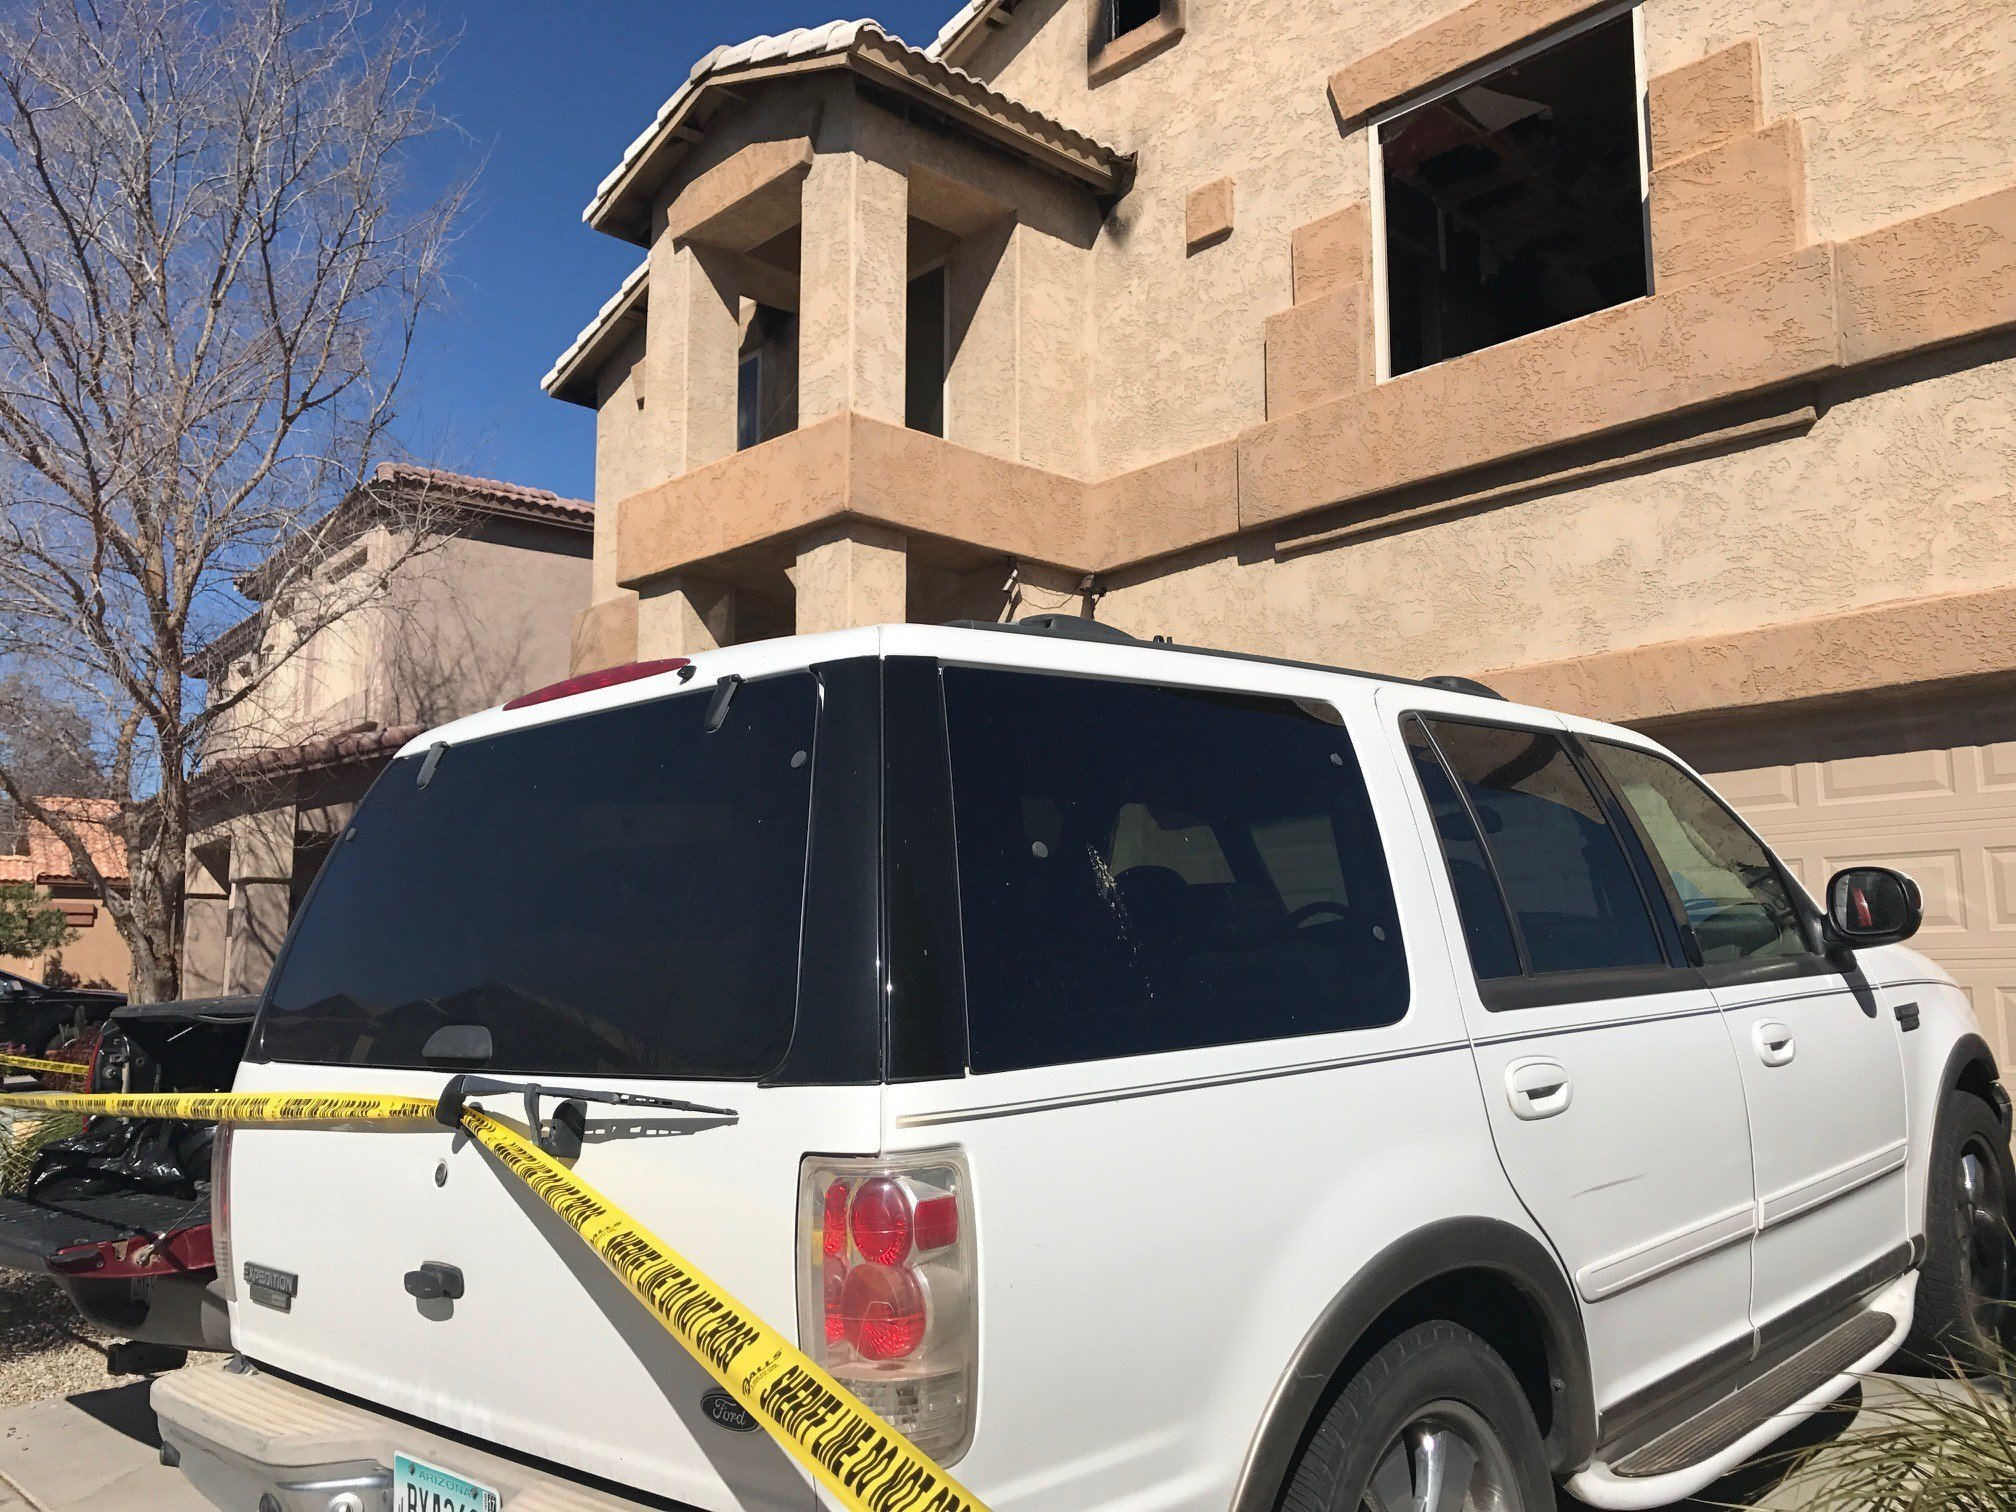 Crime tape secured the Queen Creek home as the investigation began. (Source: Karla Navarrete, 3TV/CBS 5))